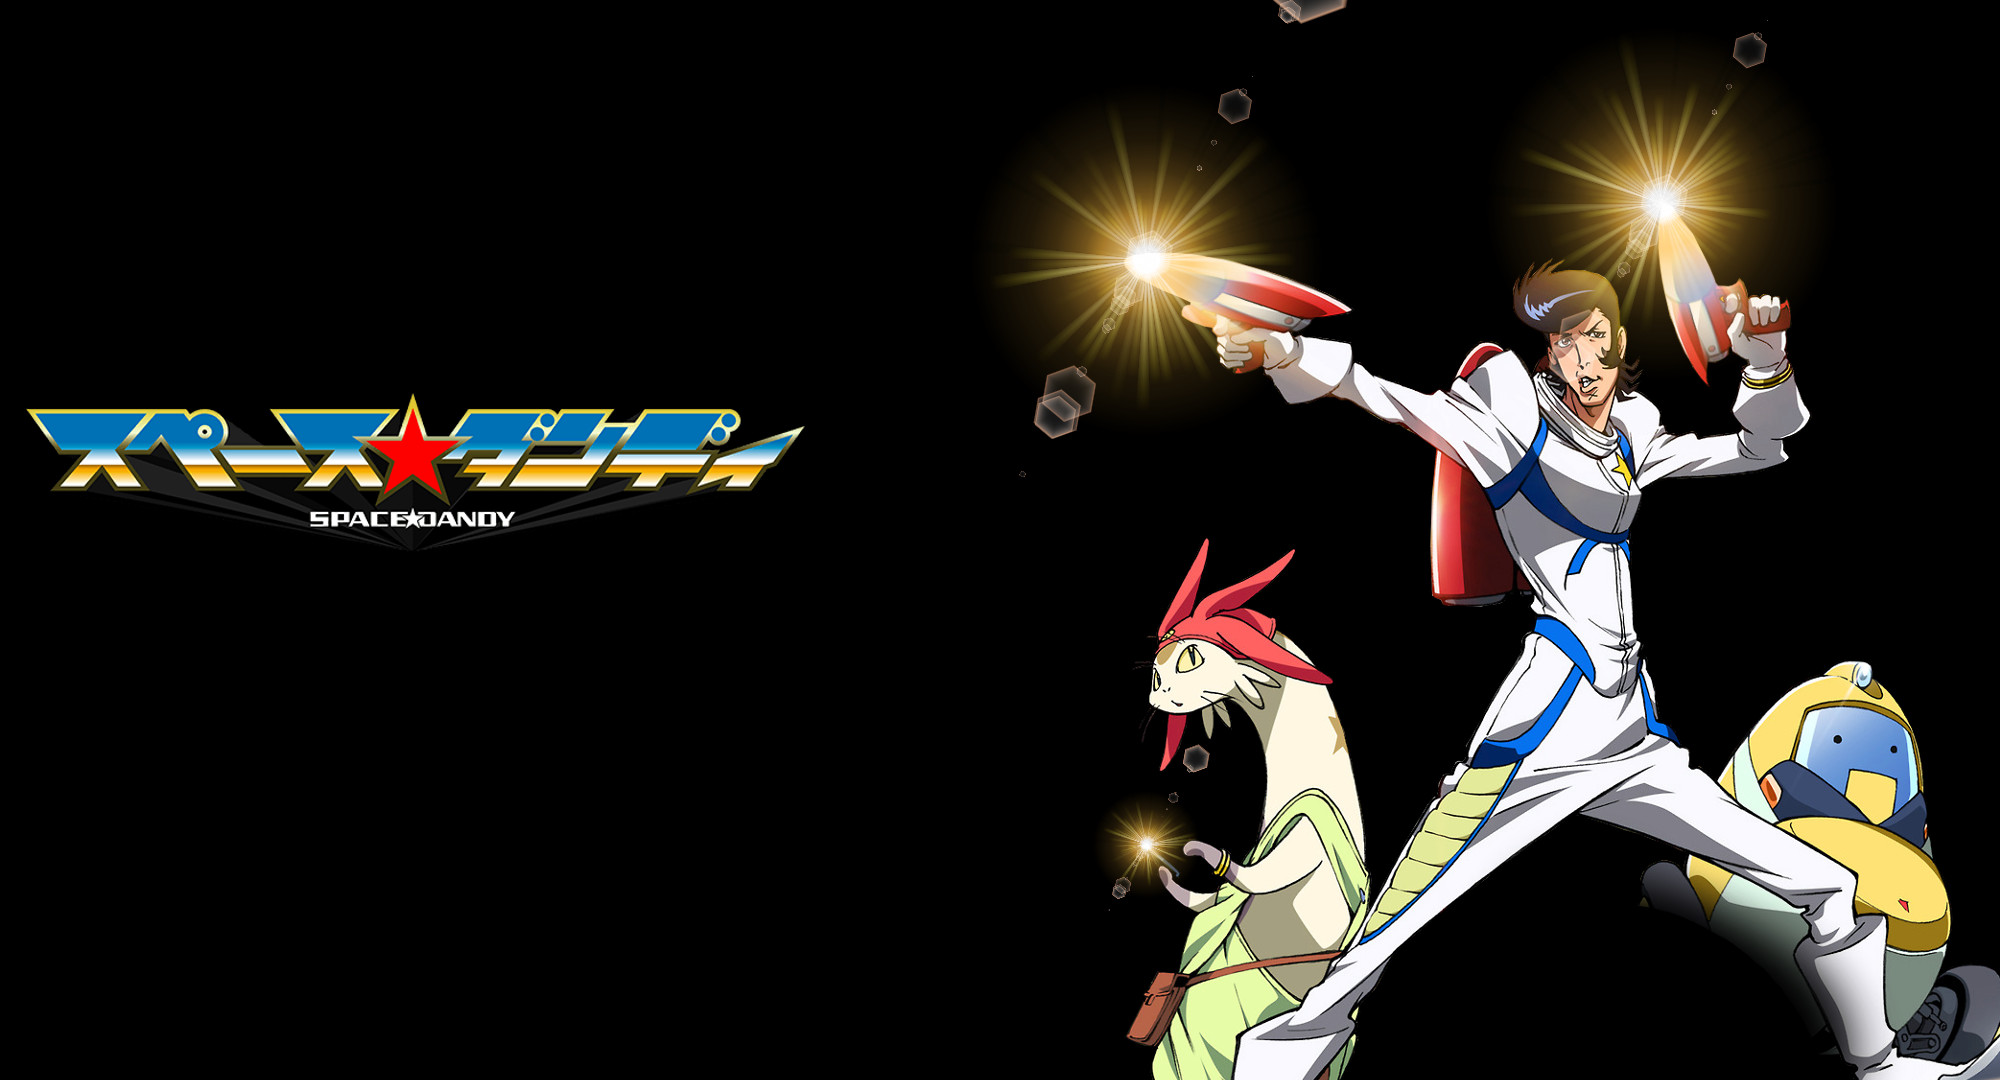 viva namida space dandy wiki fandom powered by wikia